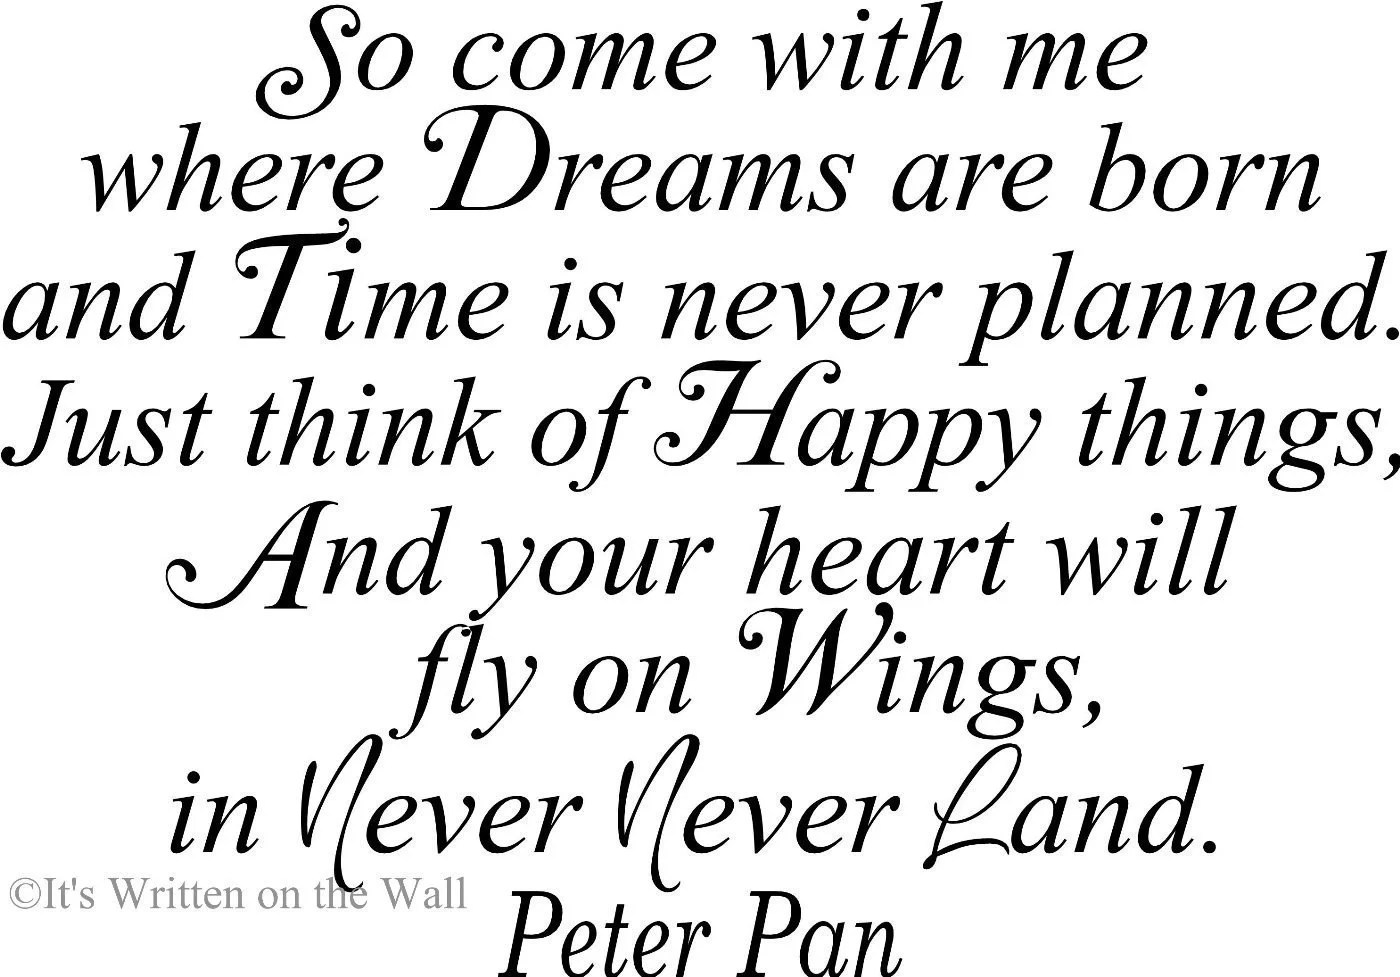 Peter Pan Quote Tinkerbell 21x15 So Come With Me Where Dreams